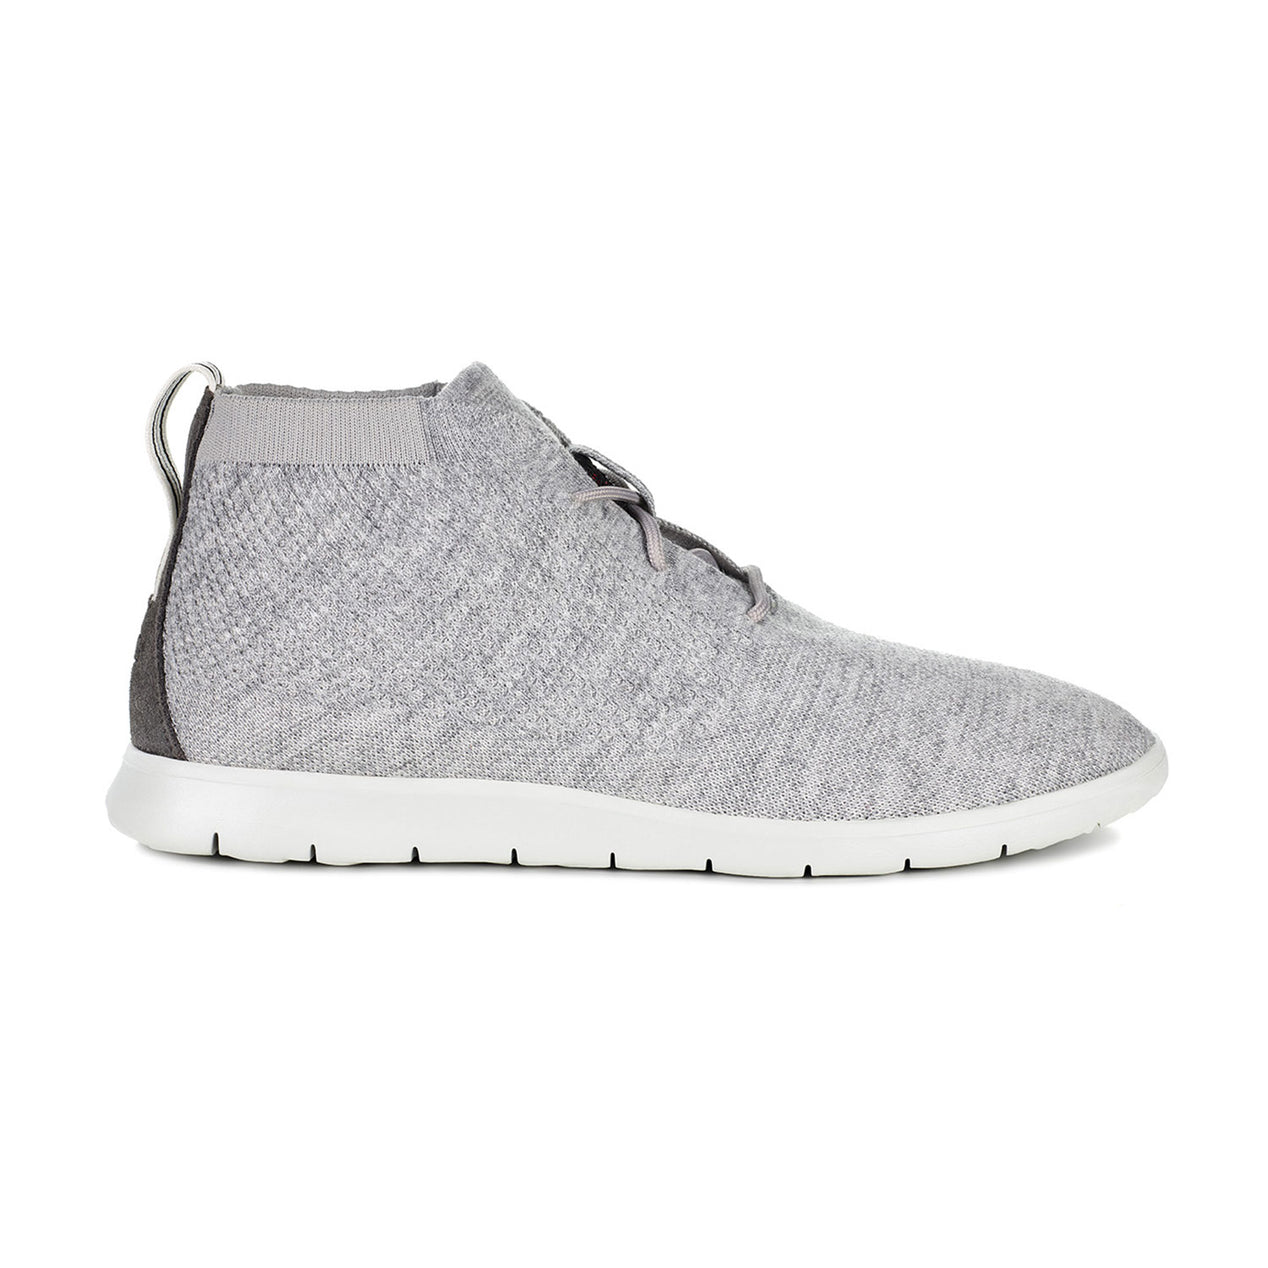 0e6abf5fed8 Men's Freamon Hyperweave Chukka Shoes